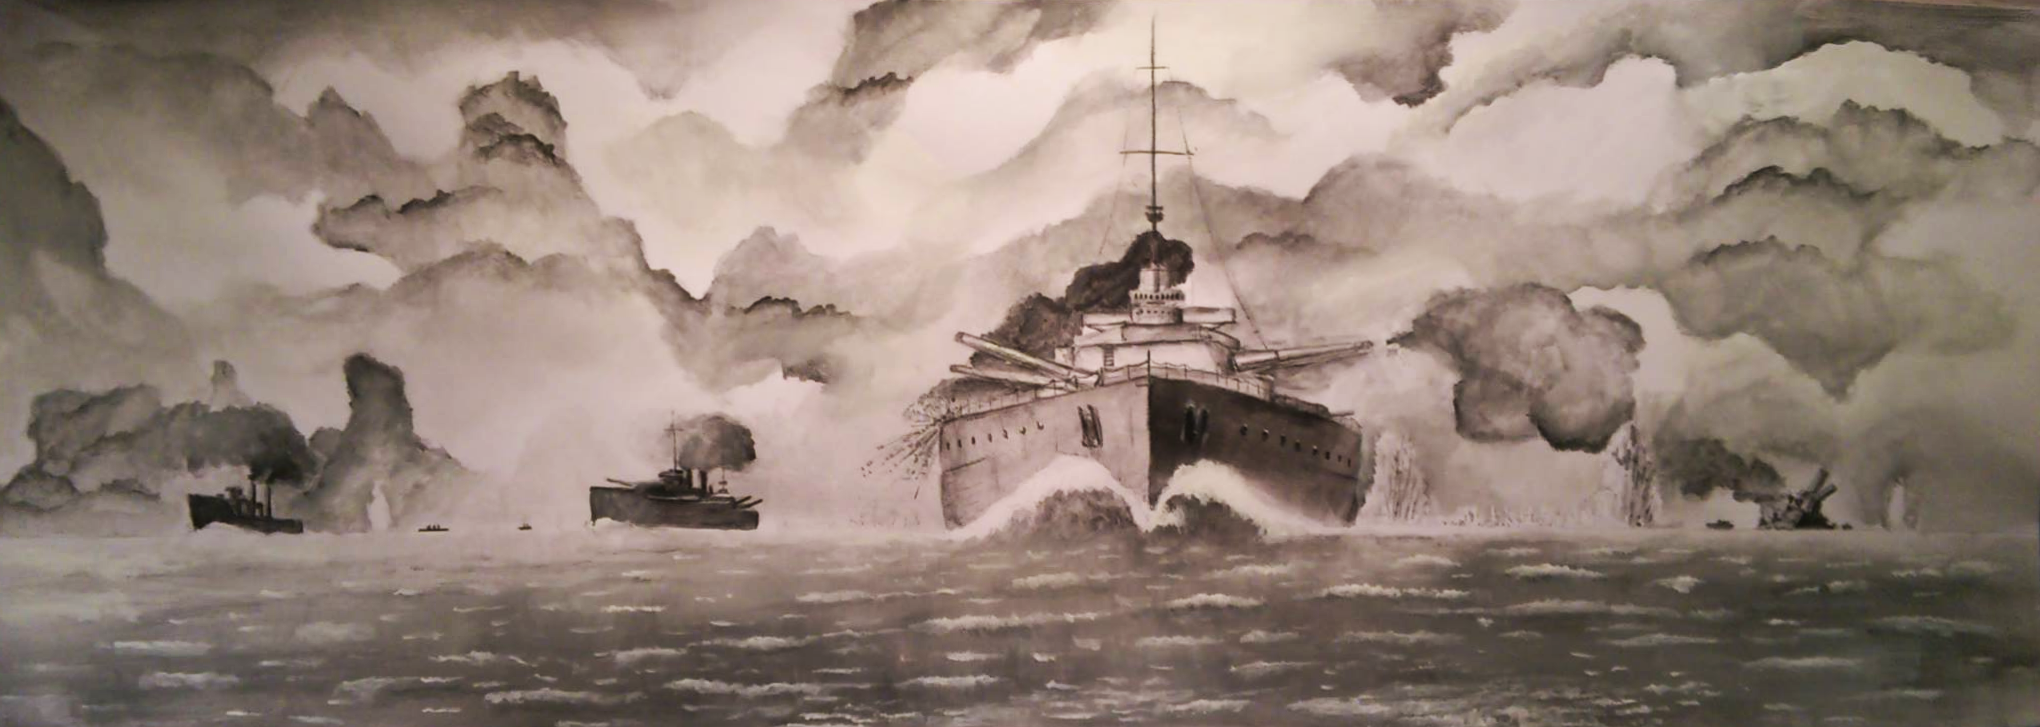 an overview of the battle of juntland A full account of the battle of jutland narrated by admiral jellicoe's grandson as part of the jutland centenary commemorations the 24 minute animation gives the viewer an overview of the major &ldquochapters&rdquo of the battle &ndash the opening battle cruiser action, the grand f.